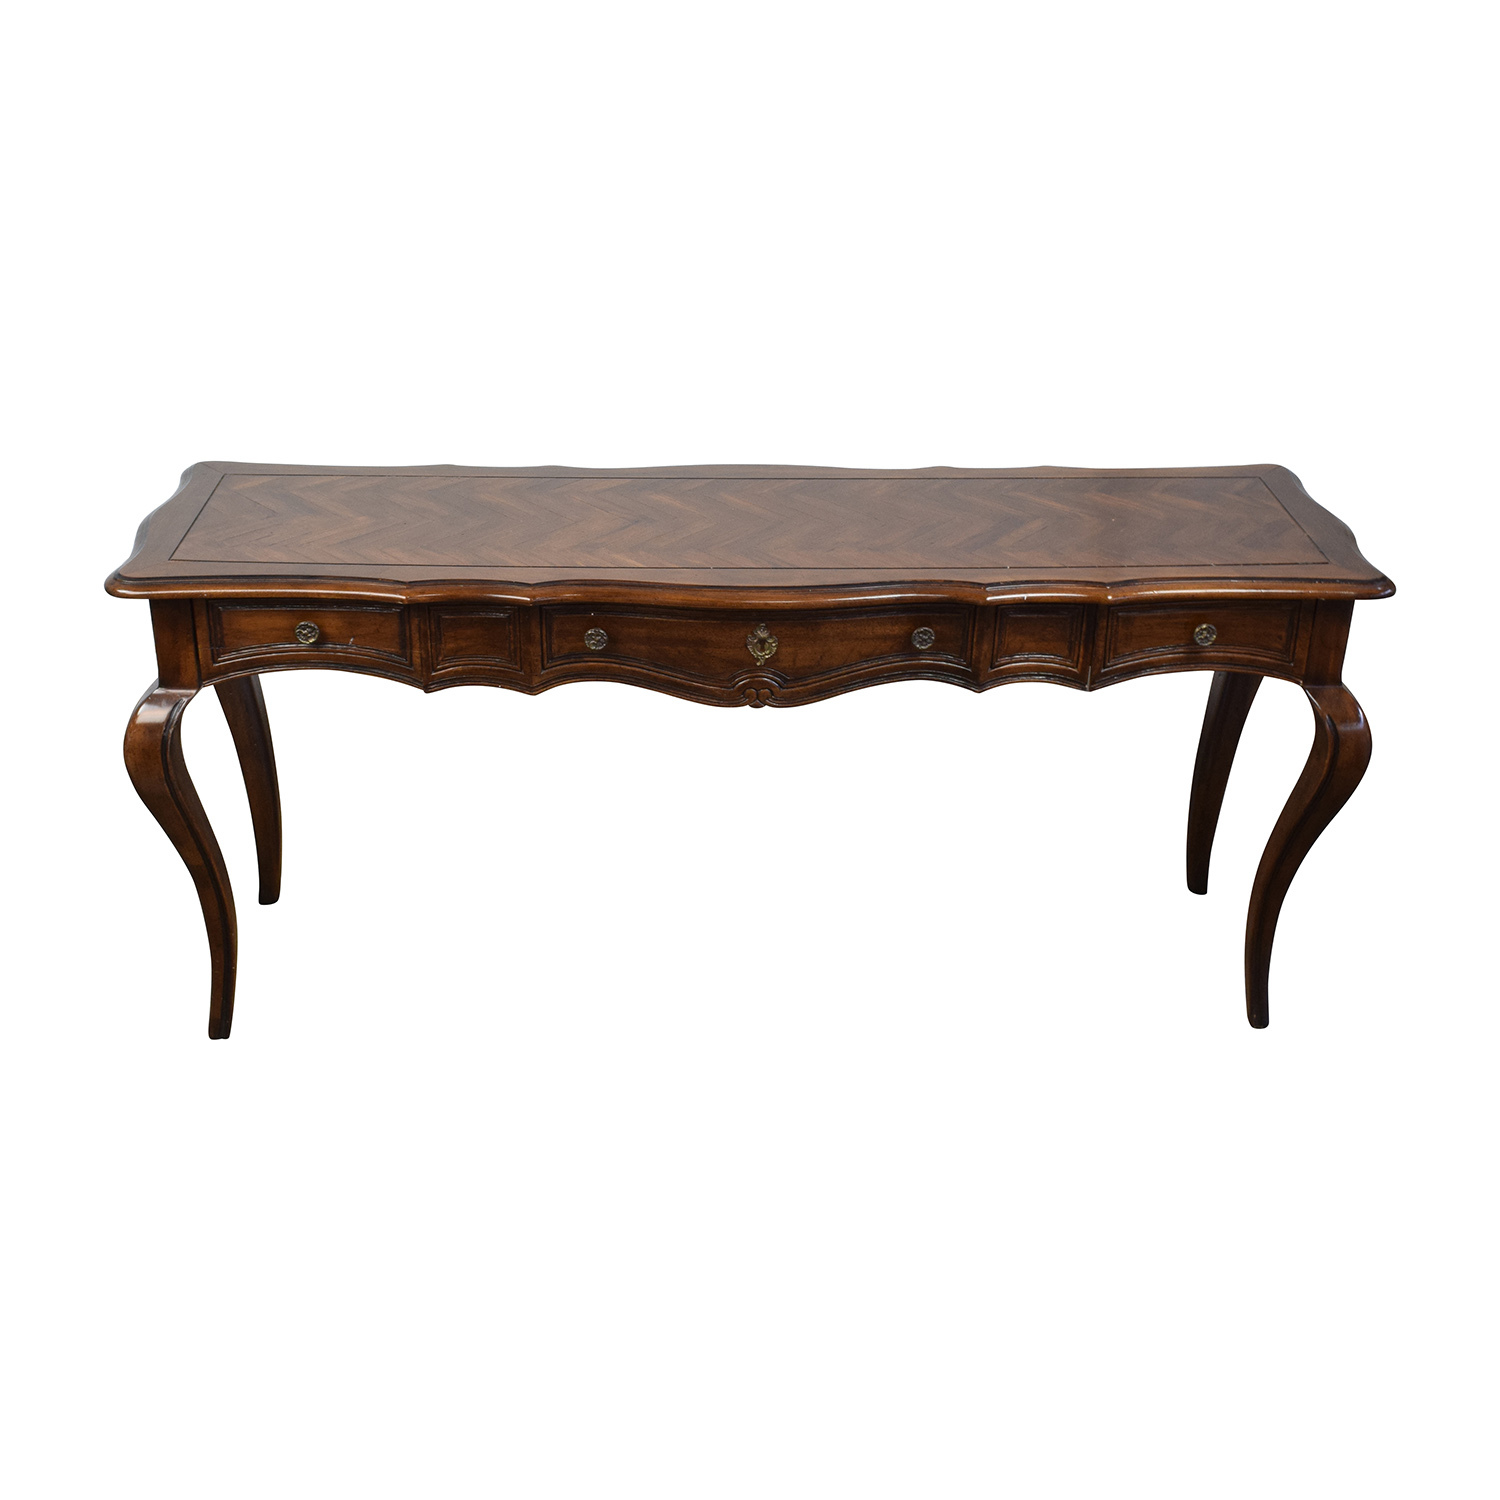 86 off heckman heckman inlayed wood sofa back table tables buy heckman inlayed wood sofa back table heckman accent tables geotapseo Gallery